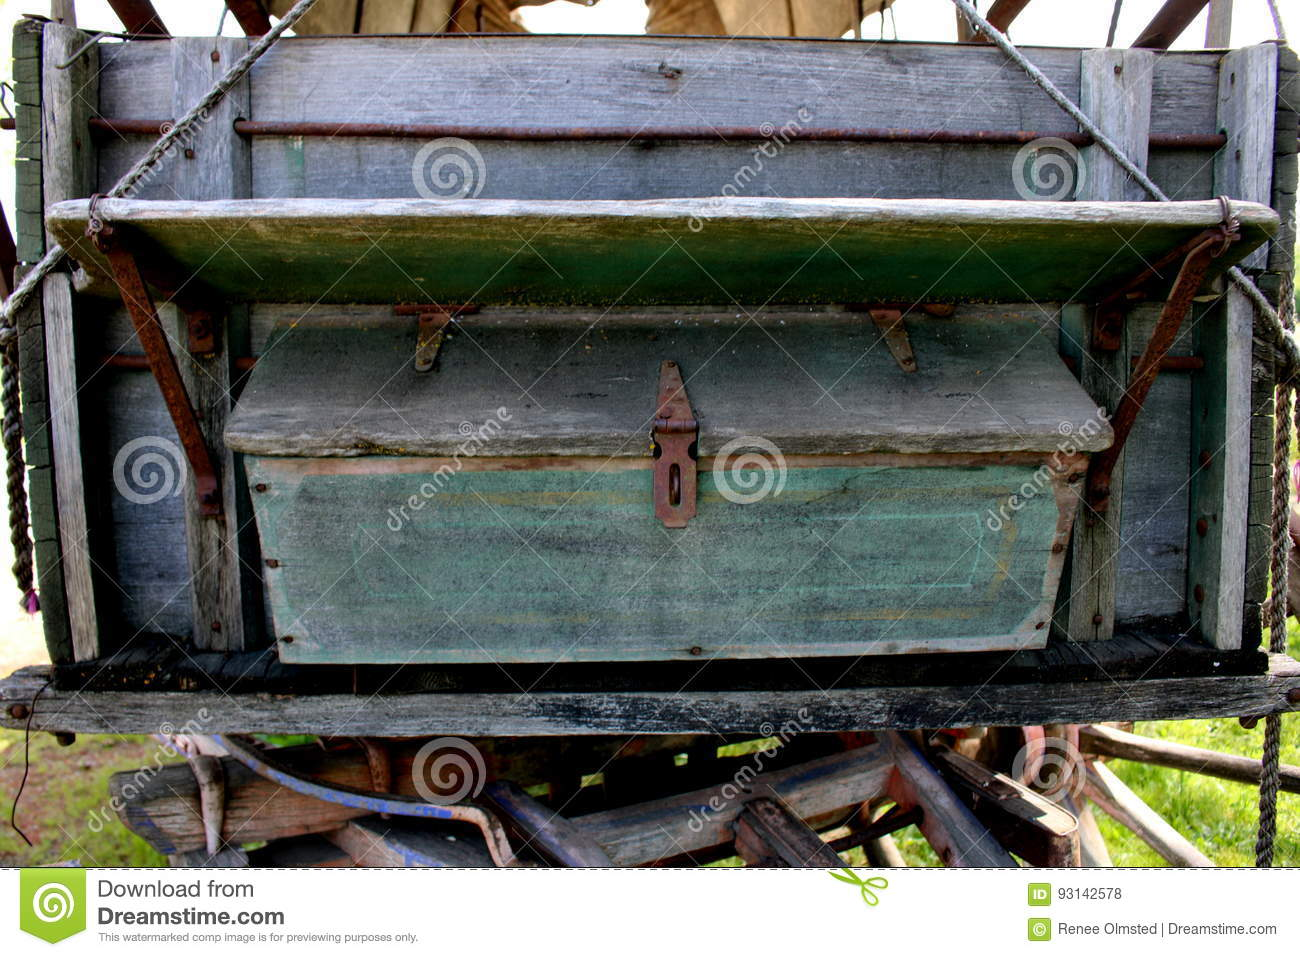 Bench And Wooden Storage Box On Covered Wagon Stock Photo Image Of Wood Bench 93142578